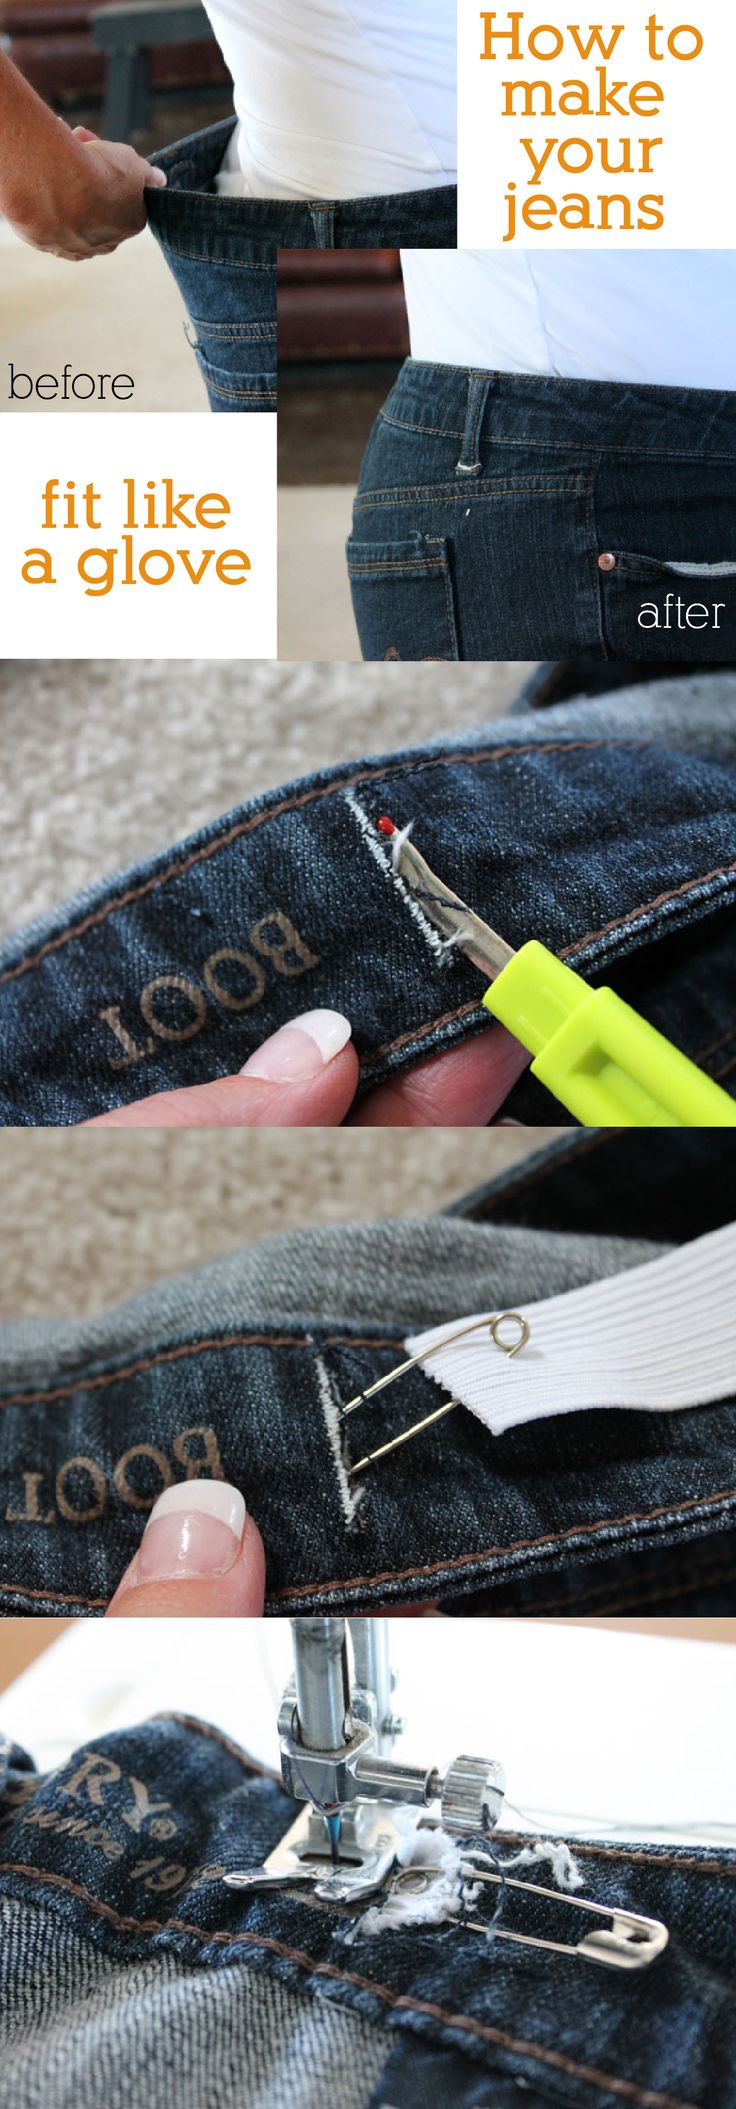 Sewing Upcycled Clothing Easy Diy 161 Best Sewing Images On Pinterest Upcycled Clothing Sewing